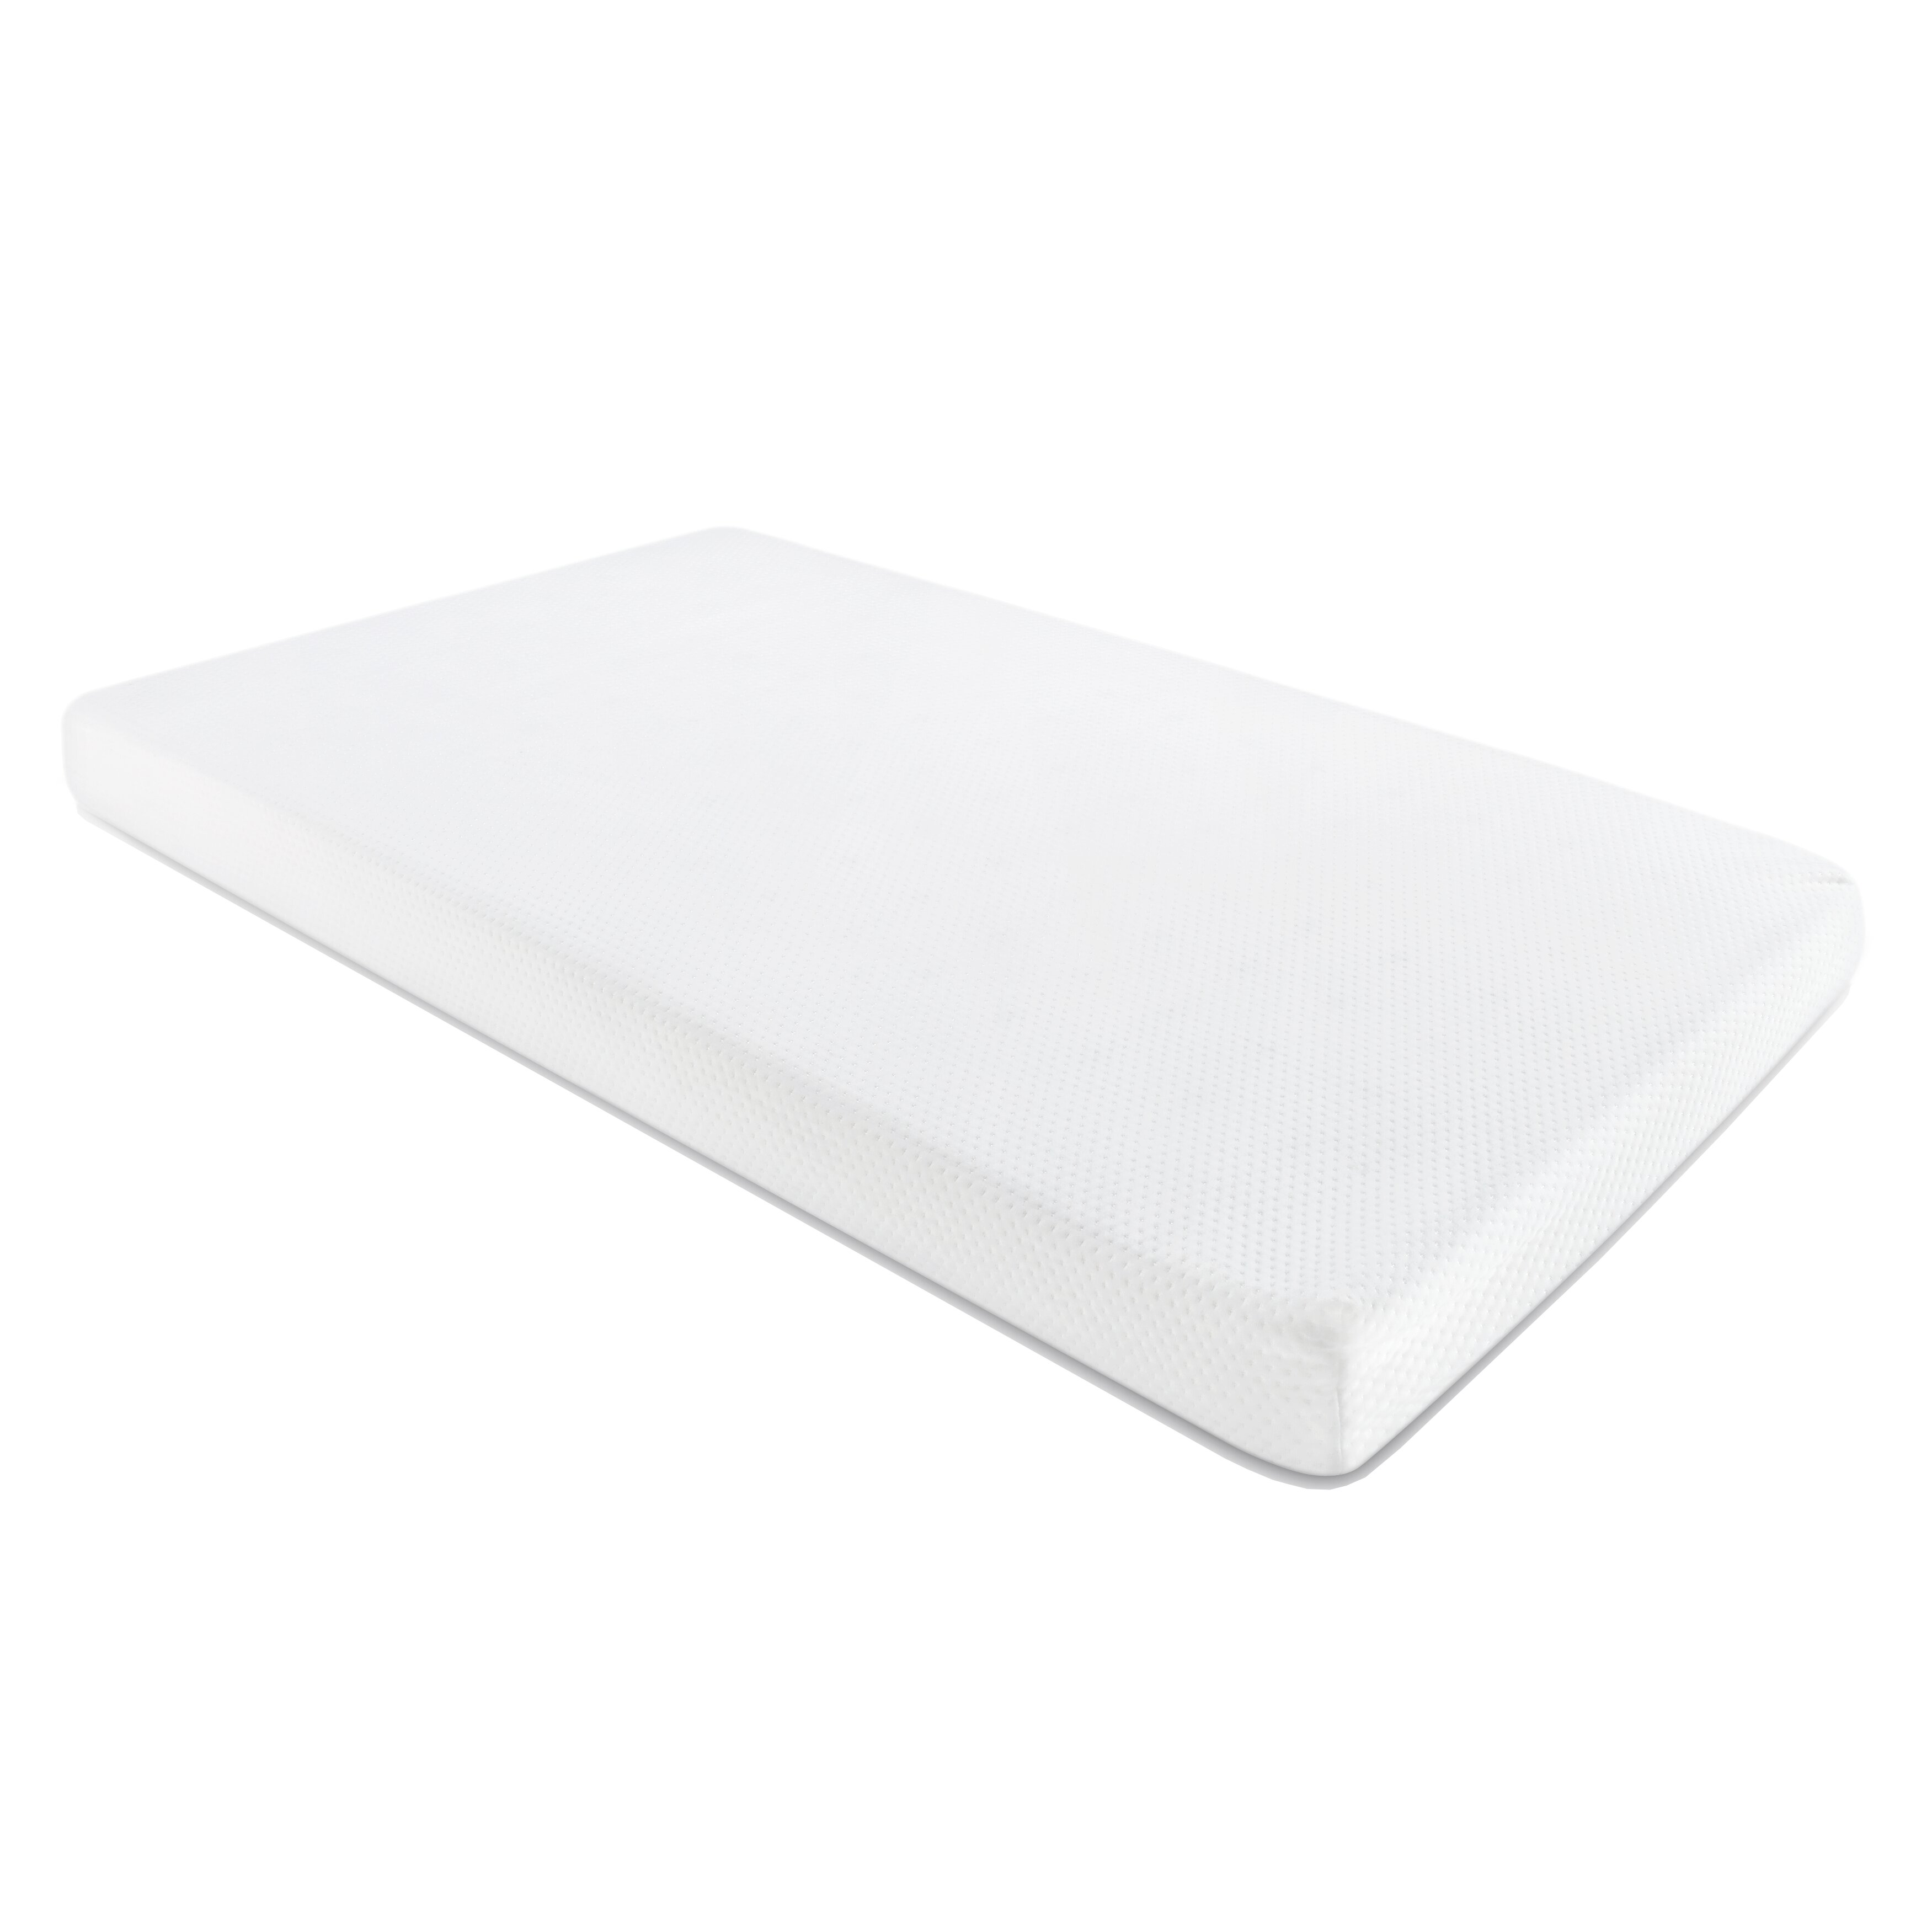 Graco Premium Foam Crib and Toddler Bed Mattress & Reviews ...